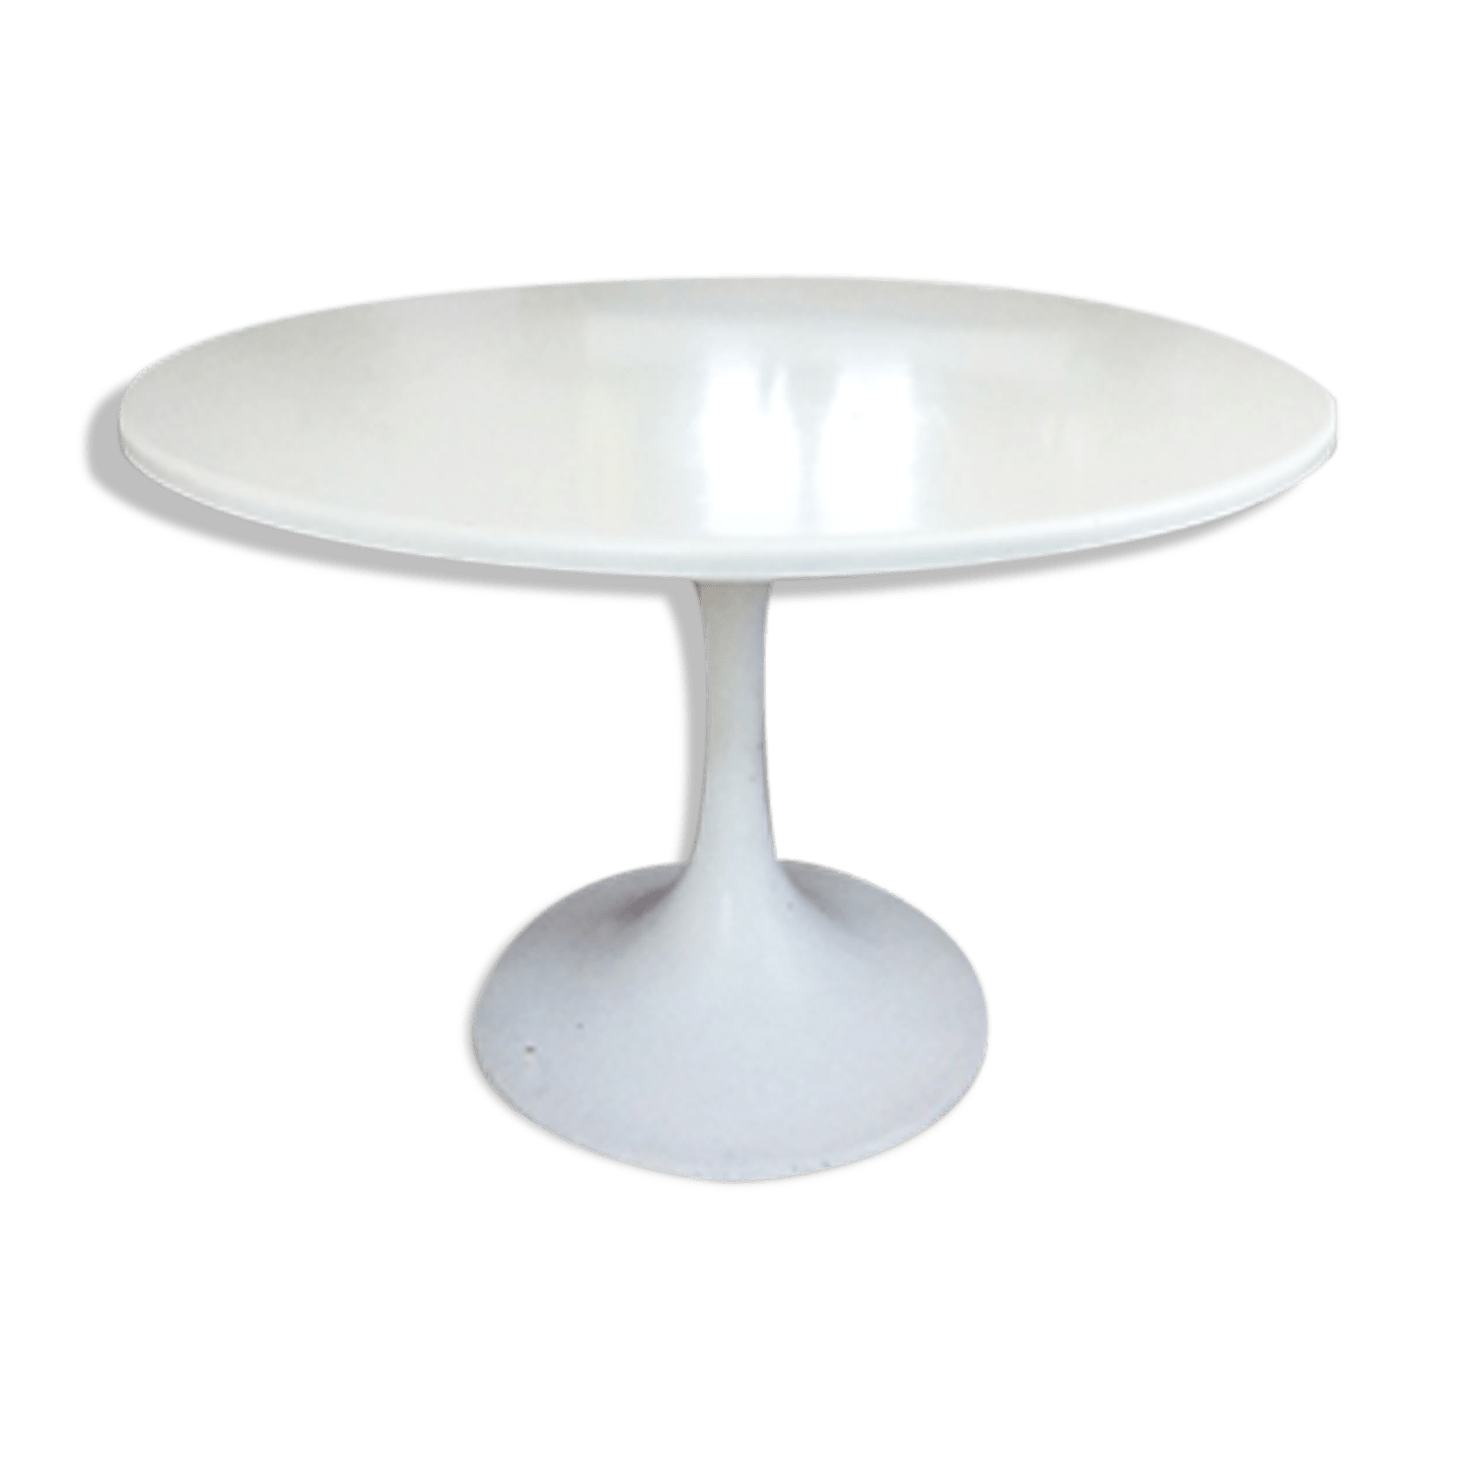 Table Ovale Tulipe Free Gallery Of Table Vintage Pieds Tulipe En Fibre De